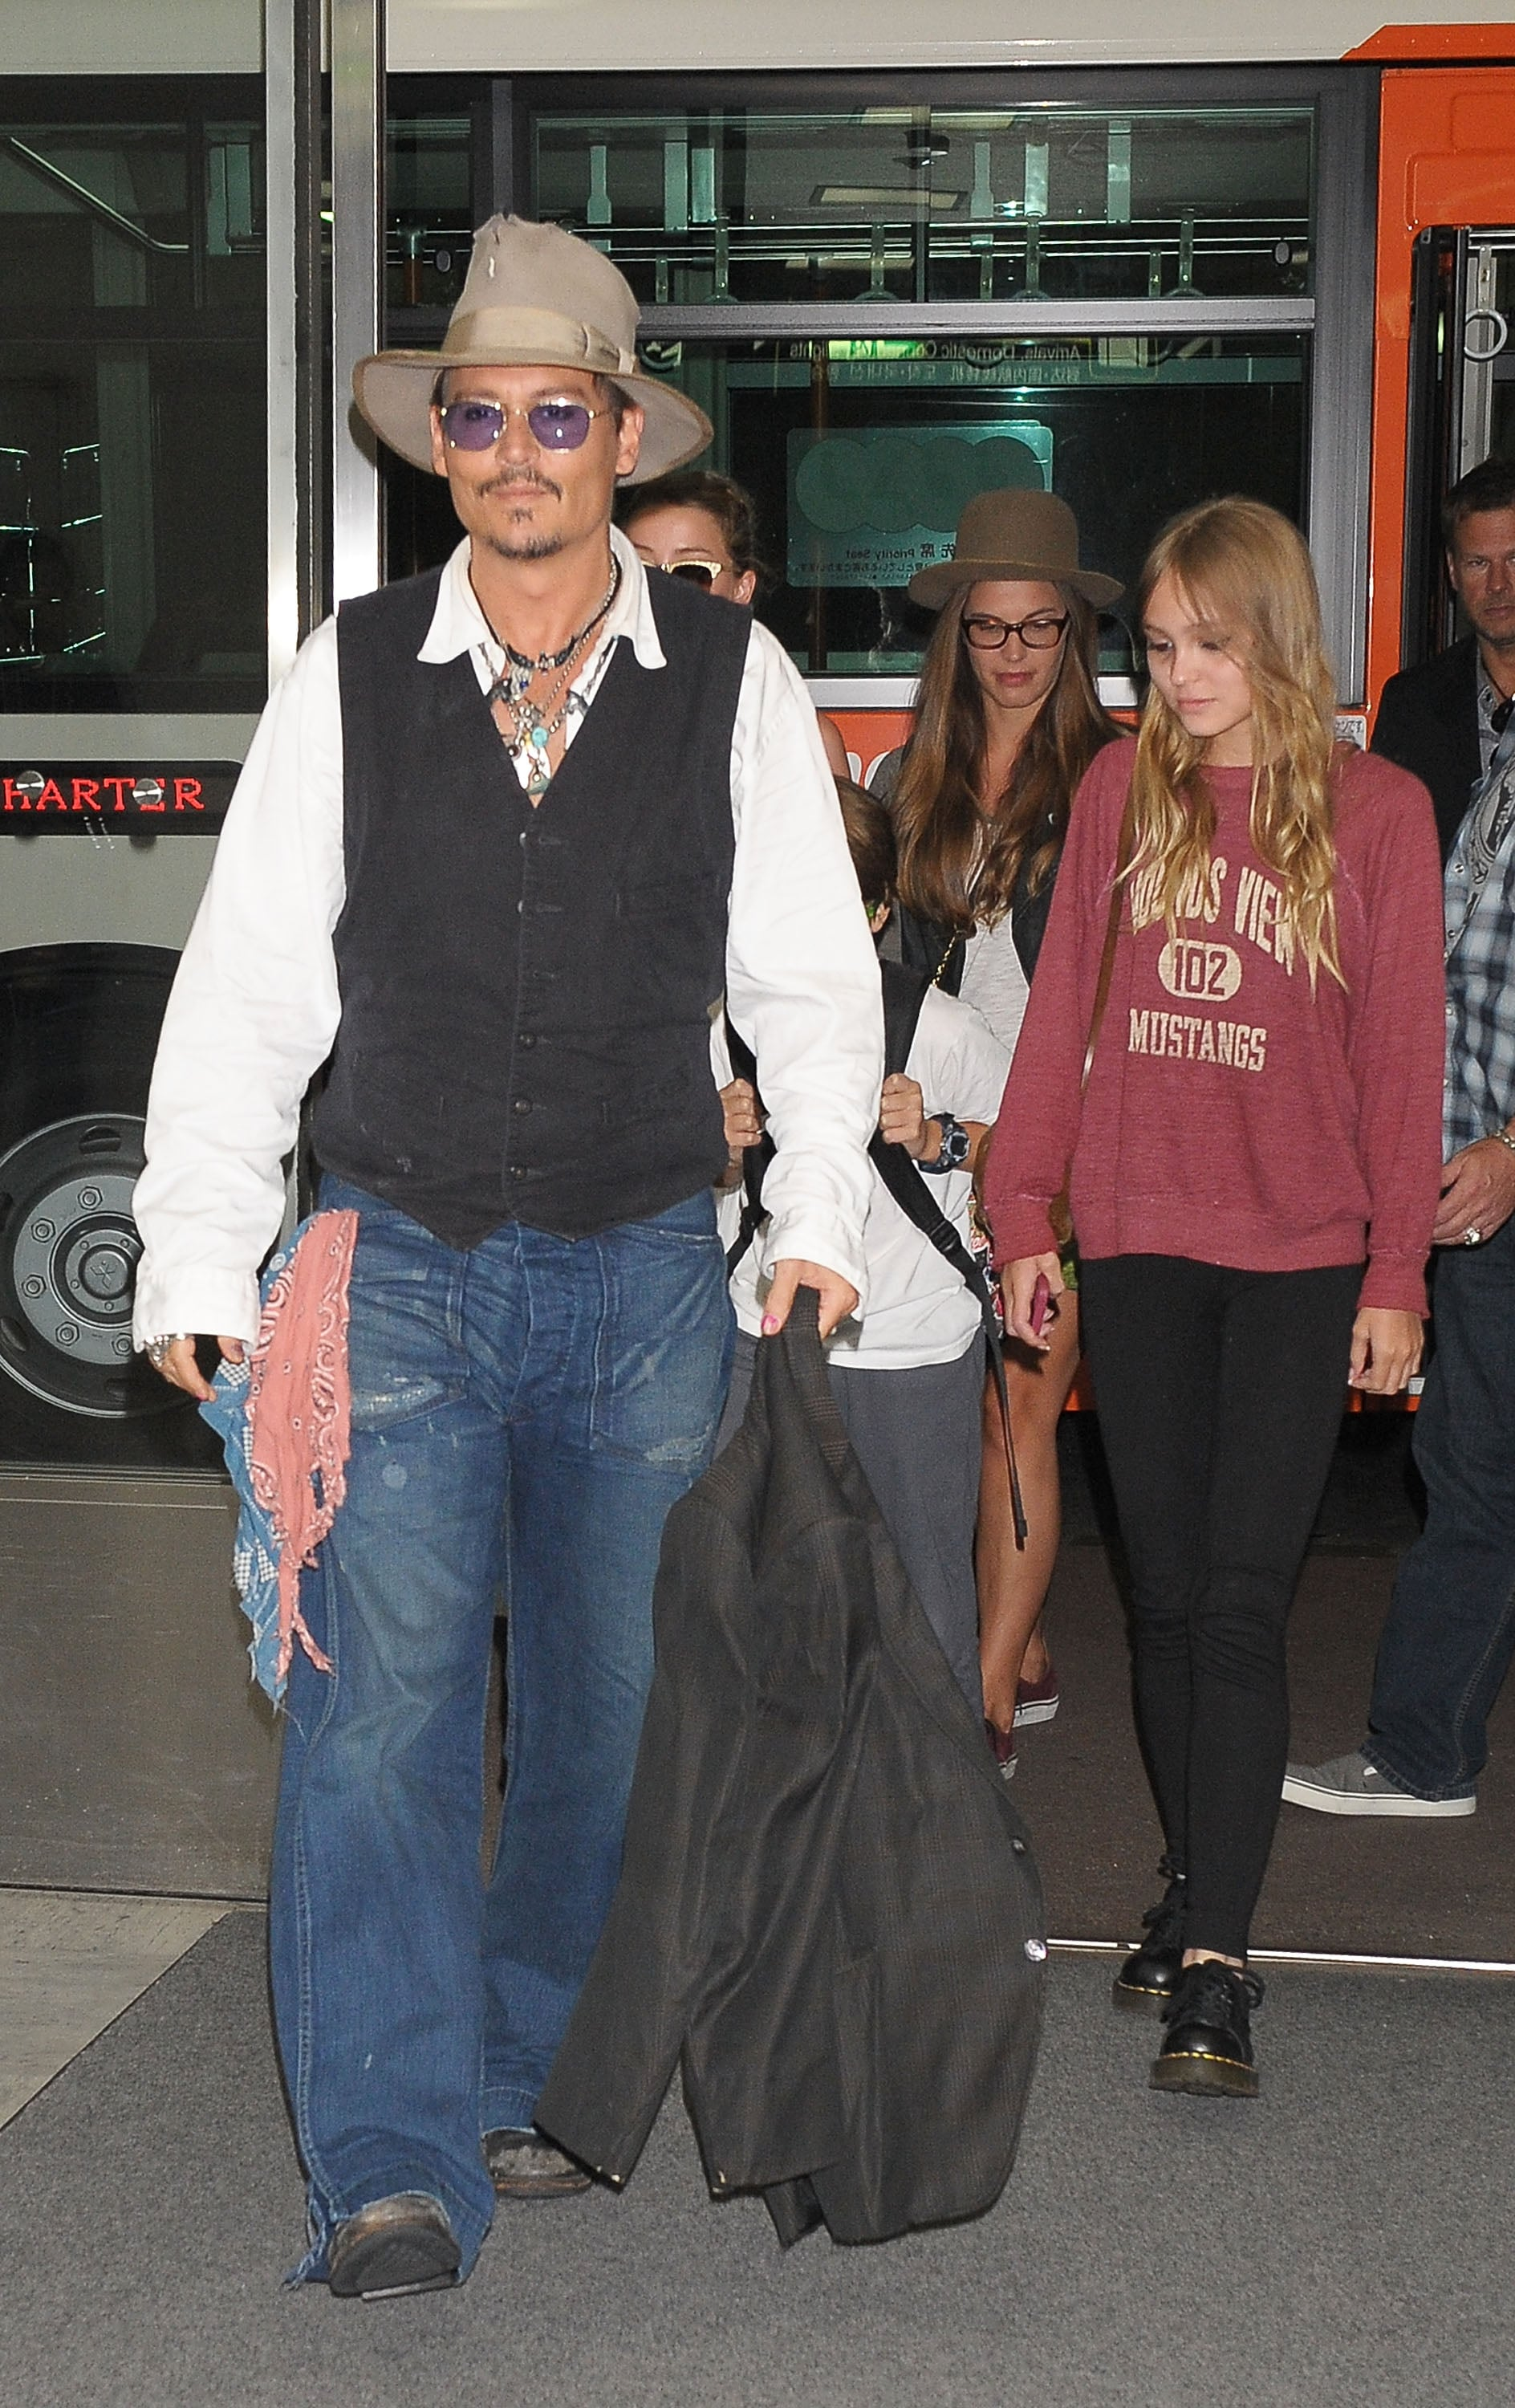 Johnny Depp and his kids walked through the airport.